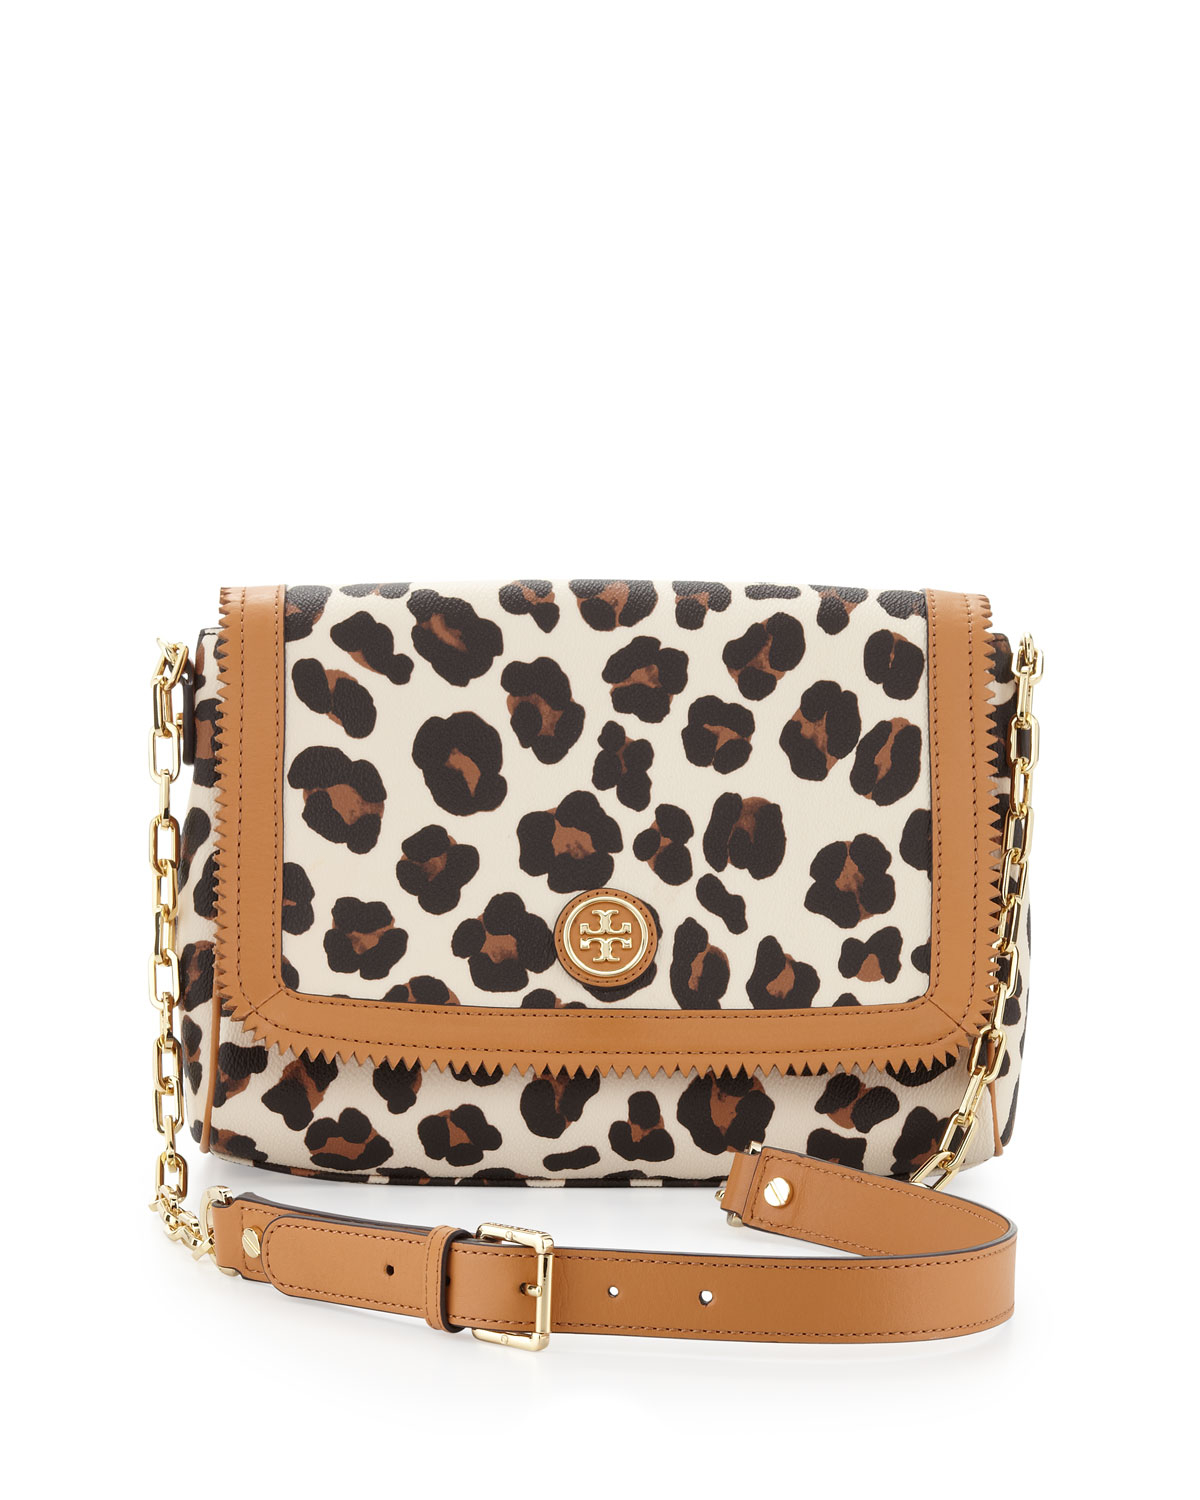 Tory burch Kerrington Leopardprint Crossbody Bag in Animal ...